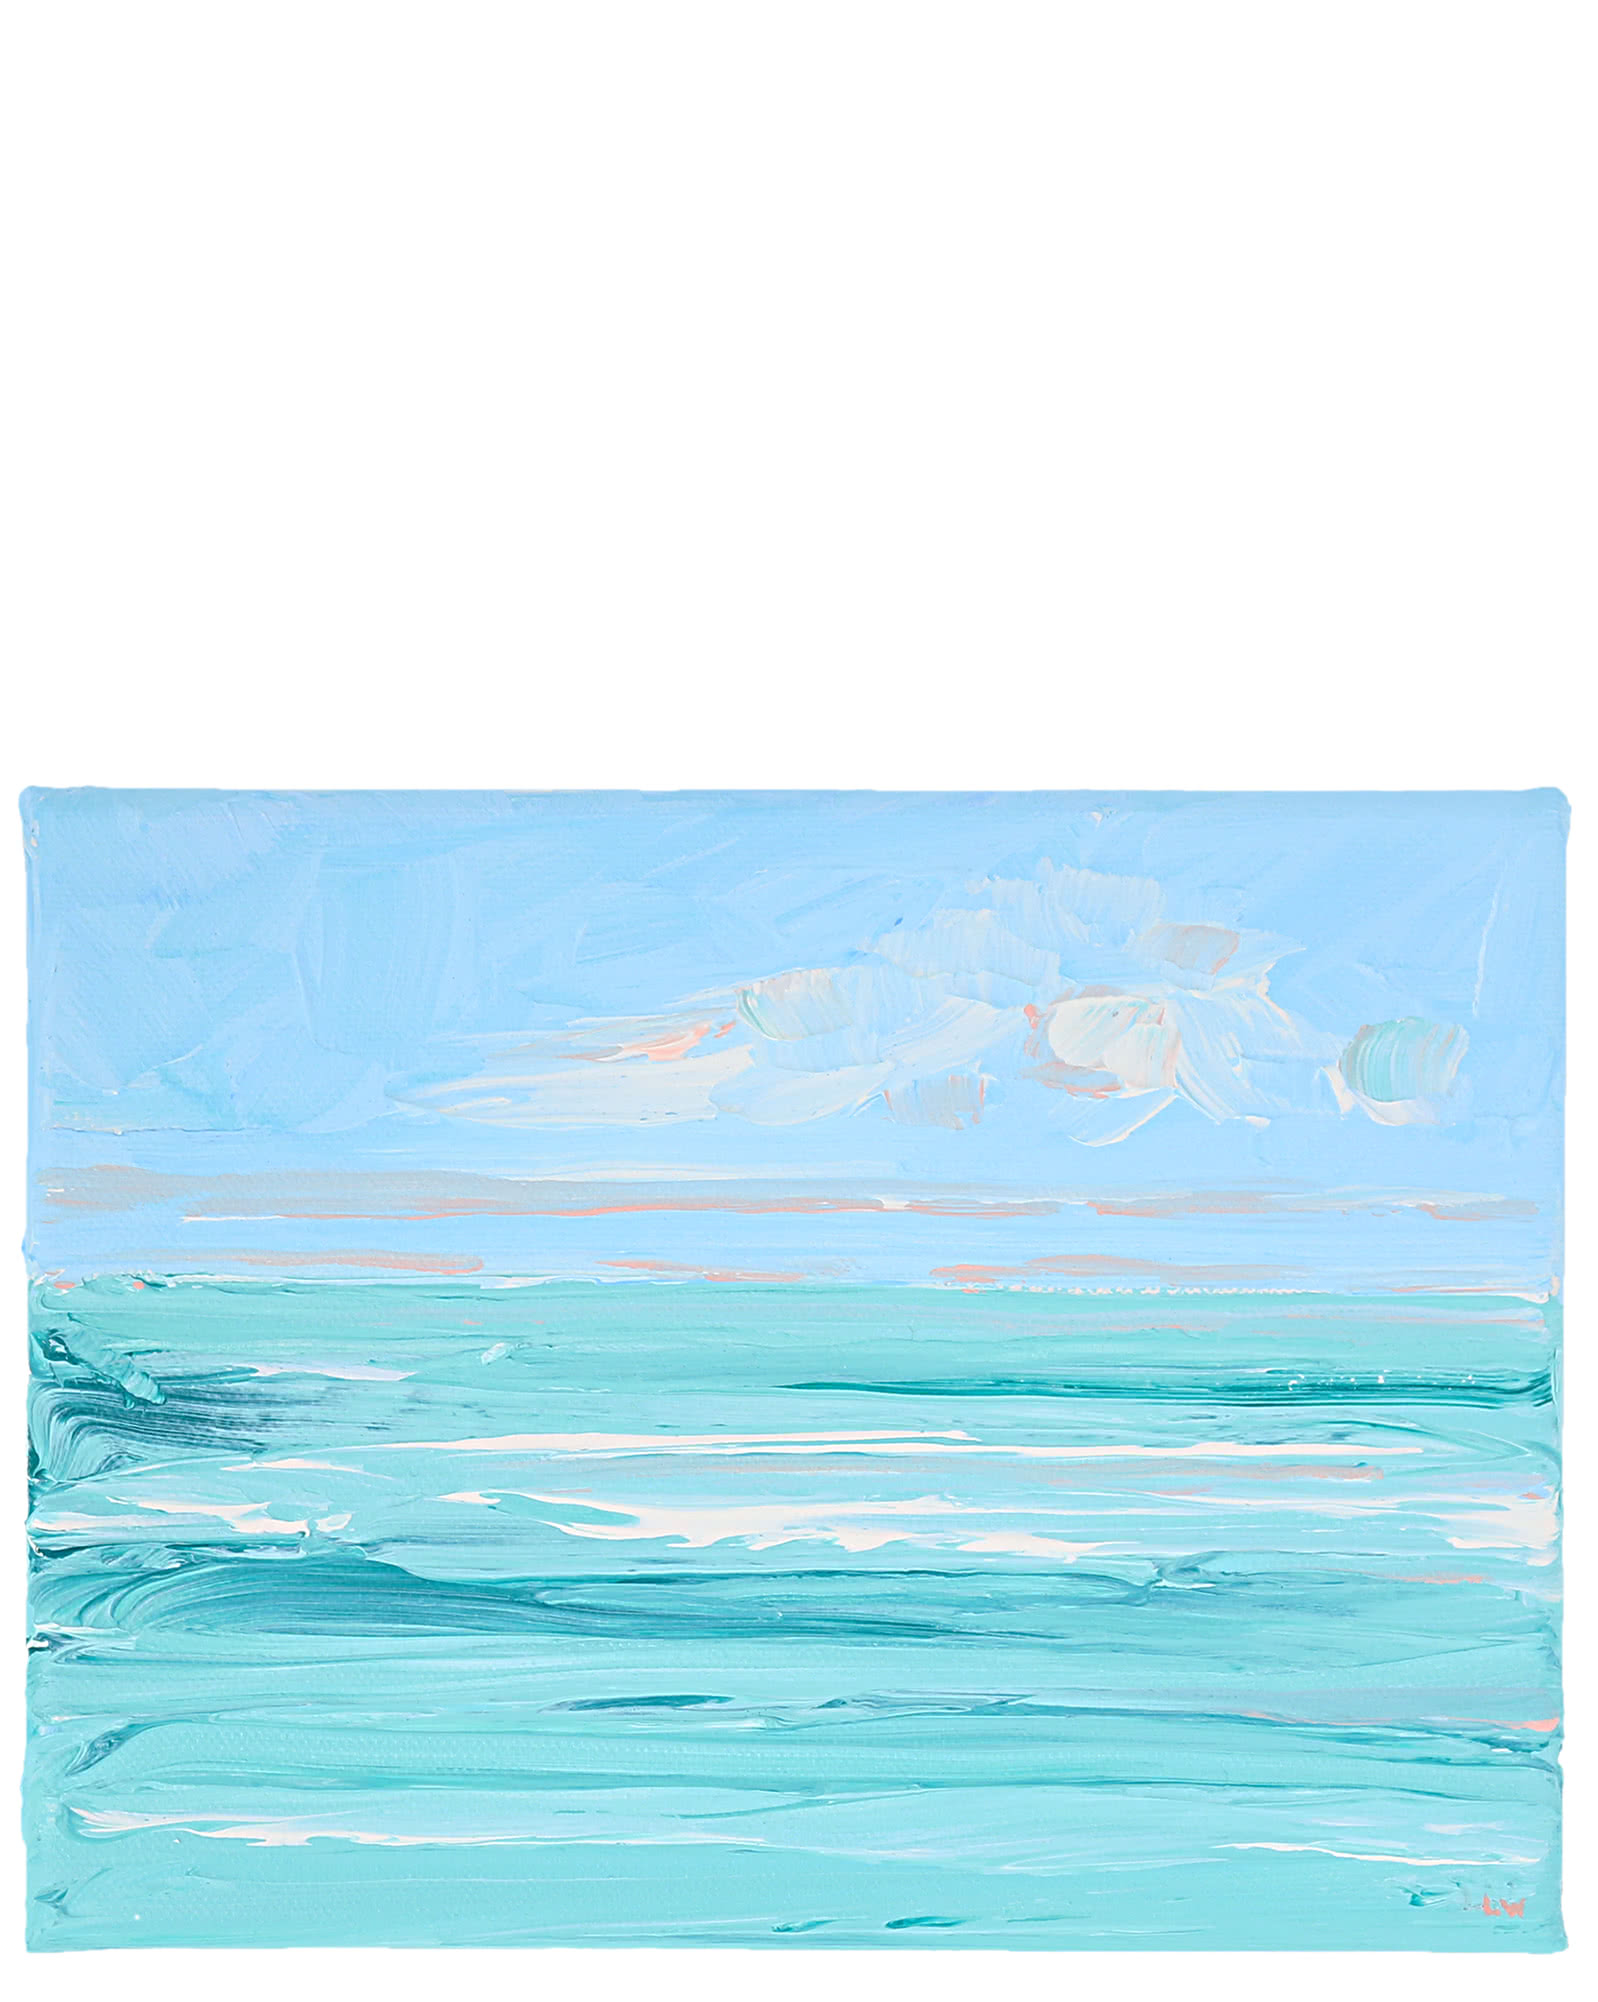 """Ocean Memories 146"" by Laurie Winthers,"